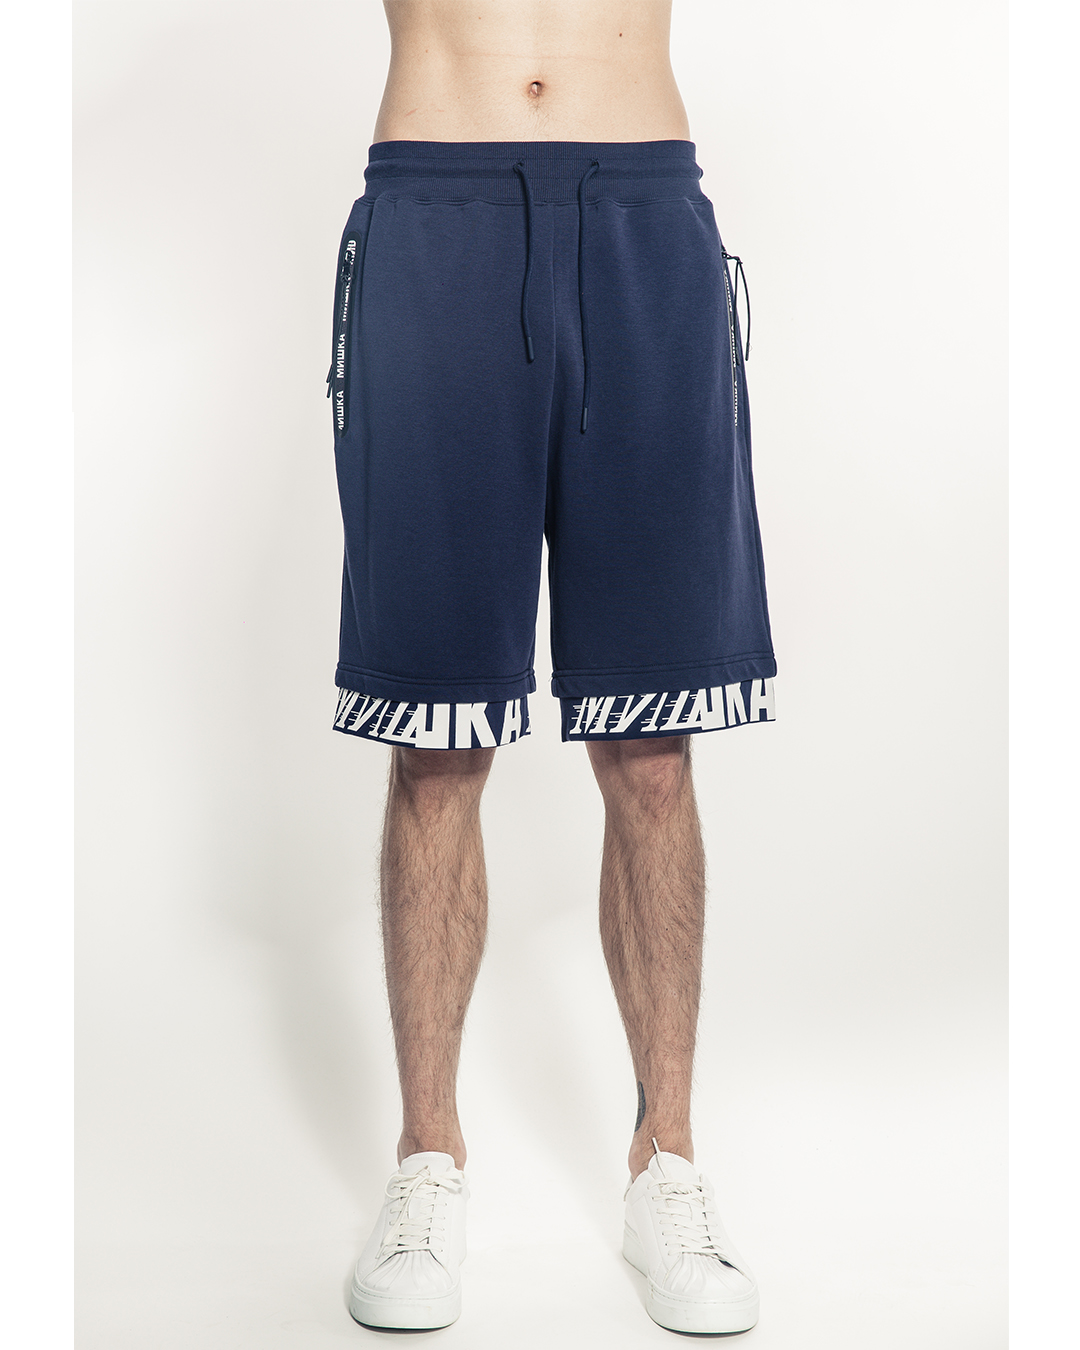 Cyrillic Shorts (Navy)